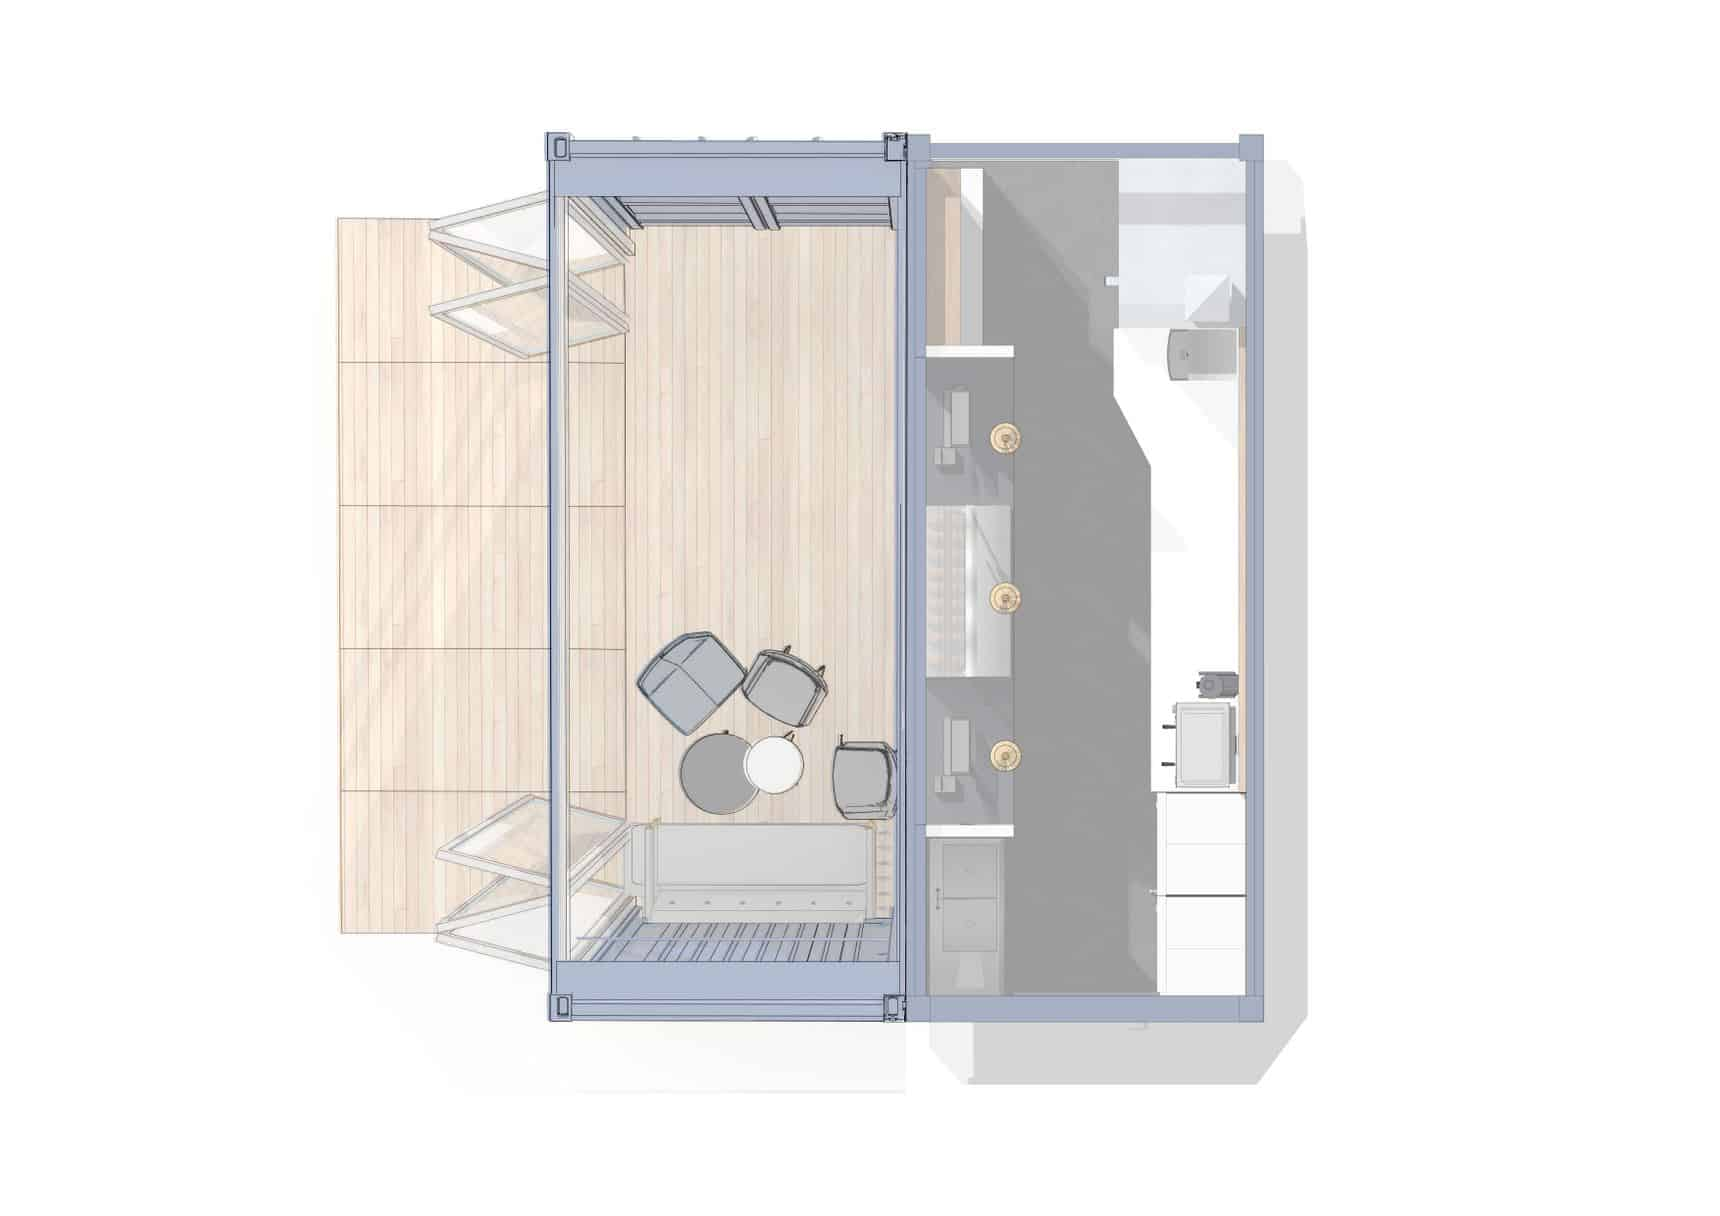 Coffee shop container conversion - plan view